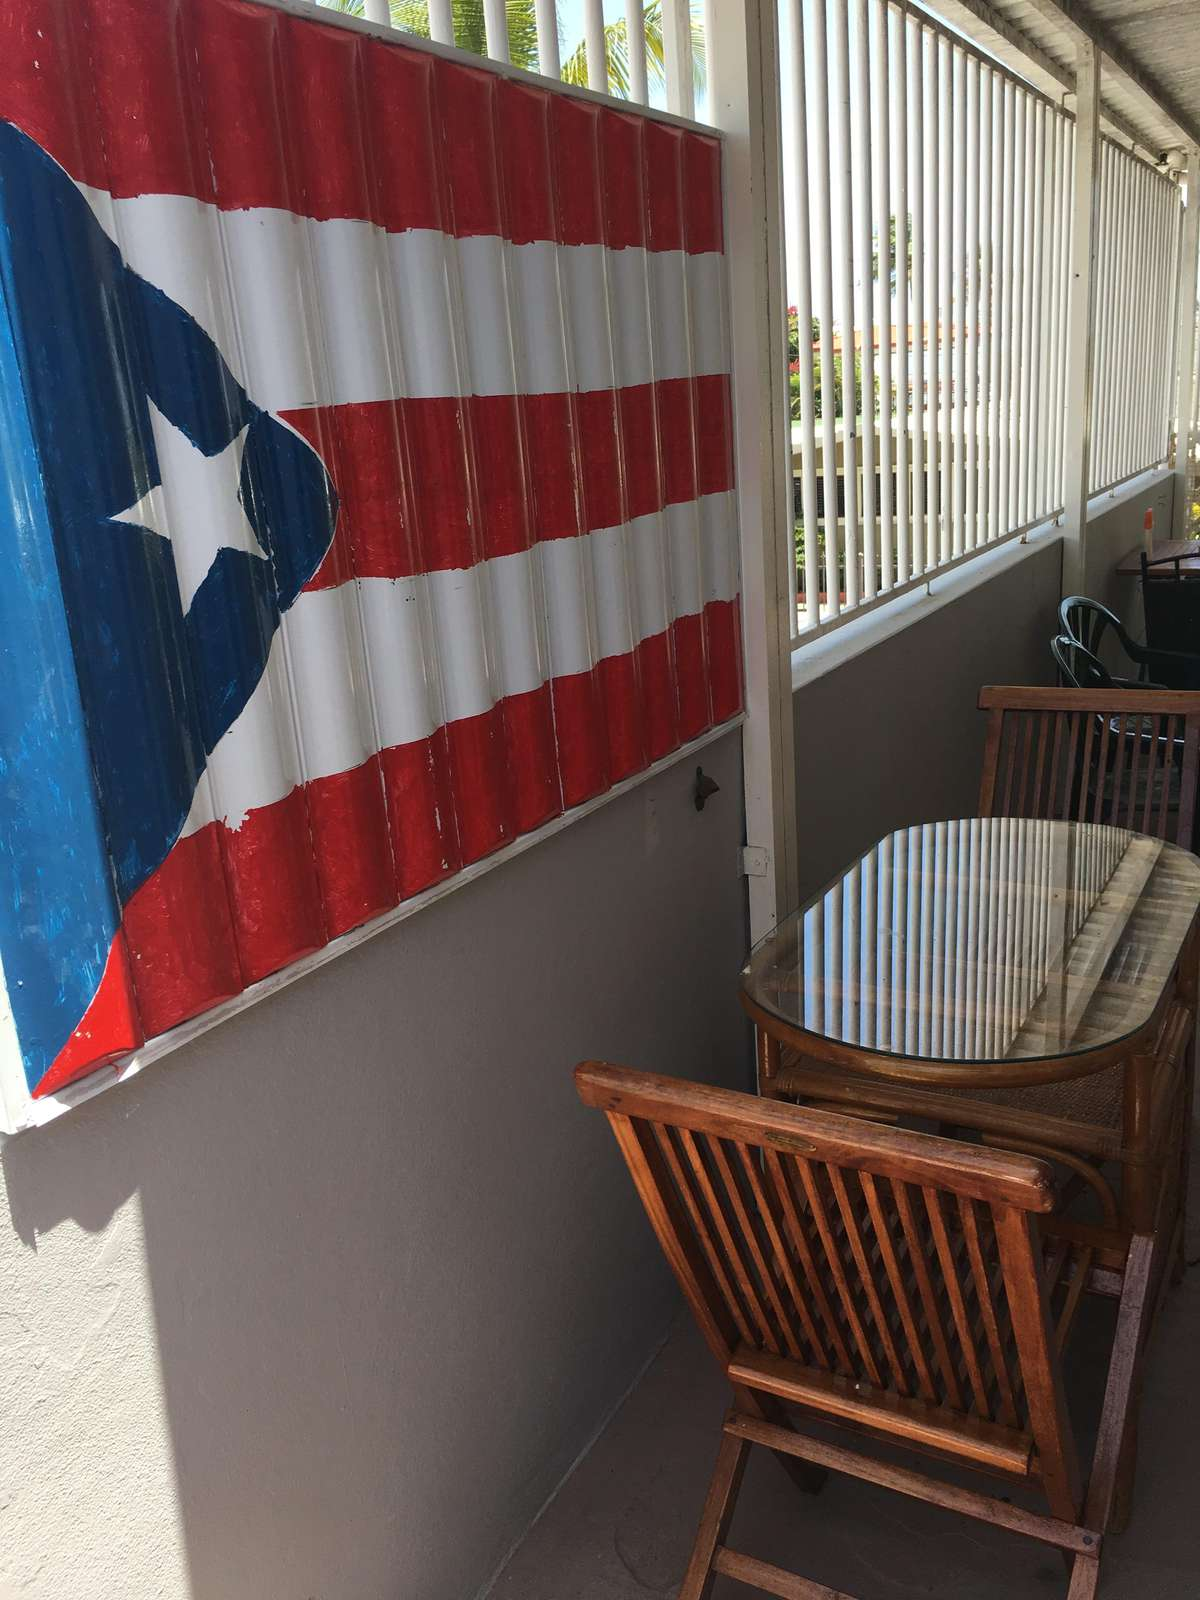 Puerto Rico flag, once outlawed, is proudly shown in so many areas in Puerto Rico